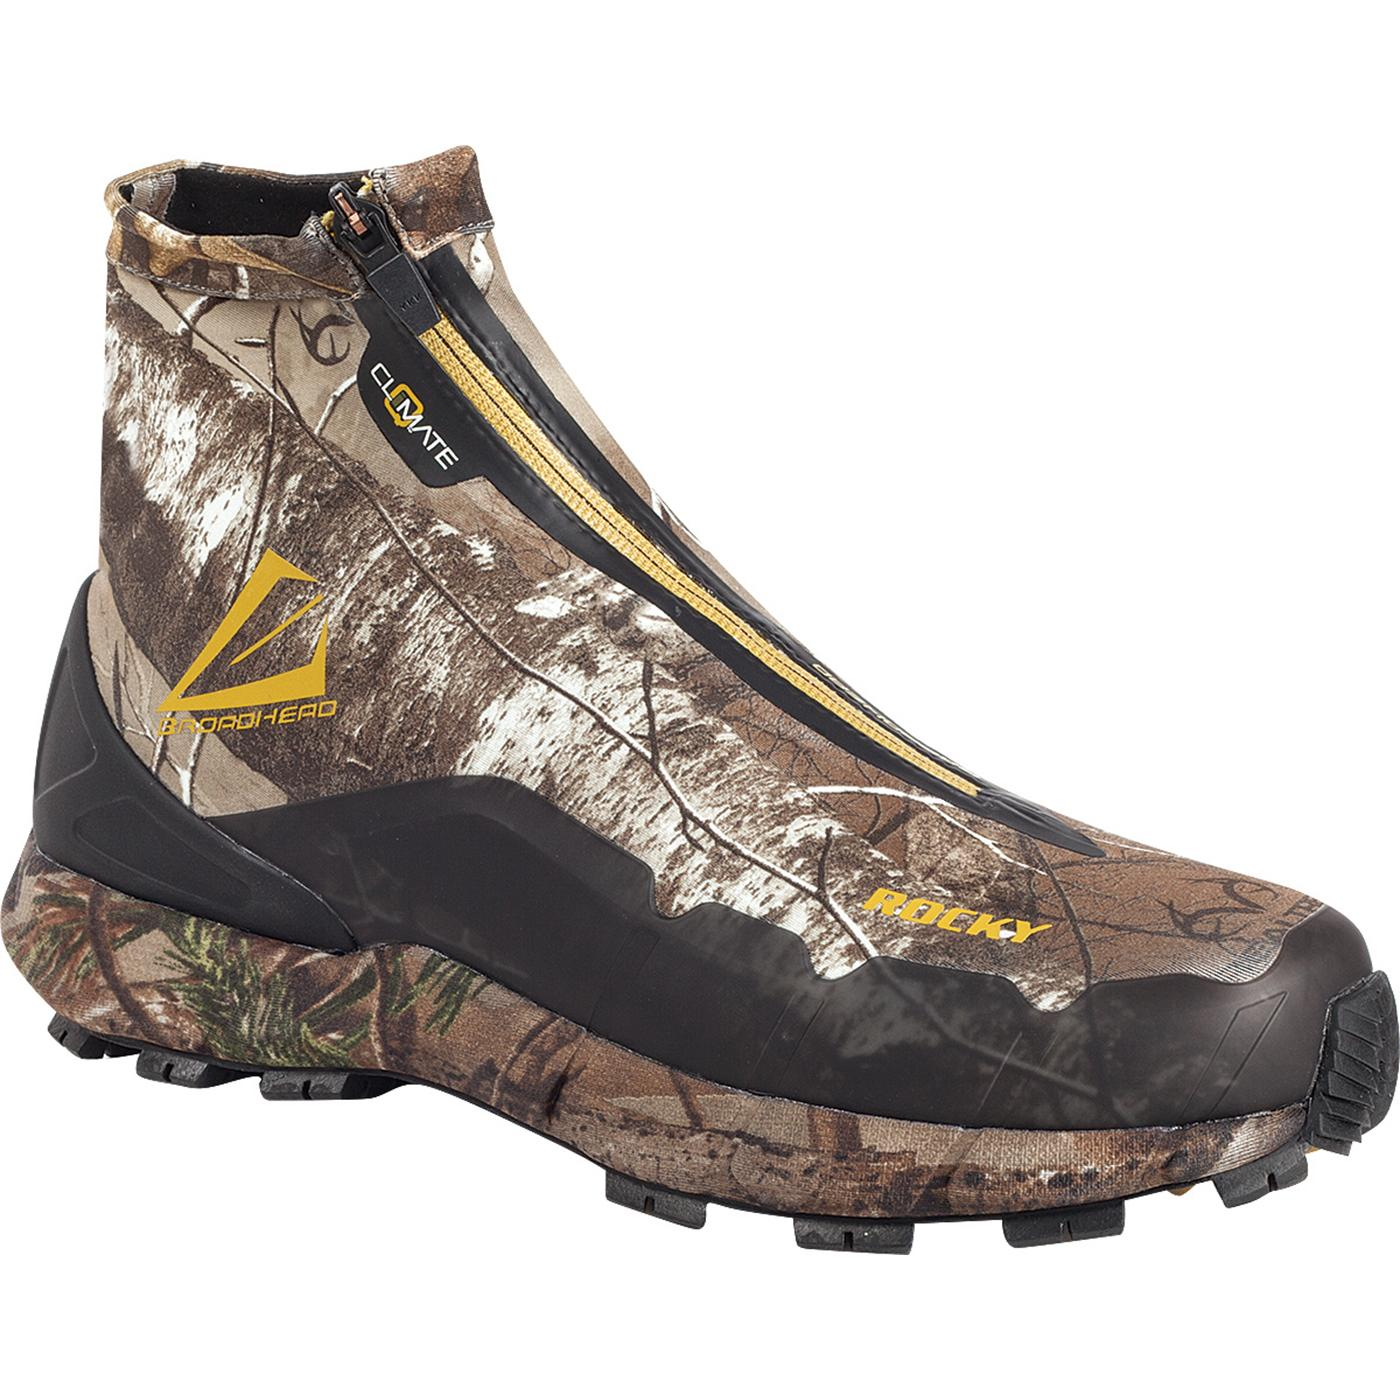 rocky broadhead realtree athletic hiking shoes